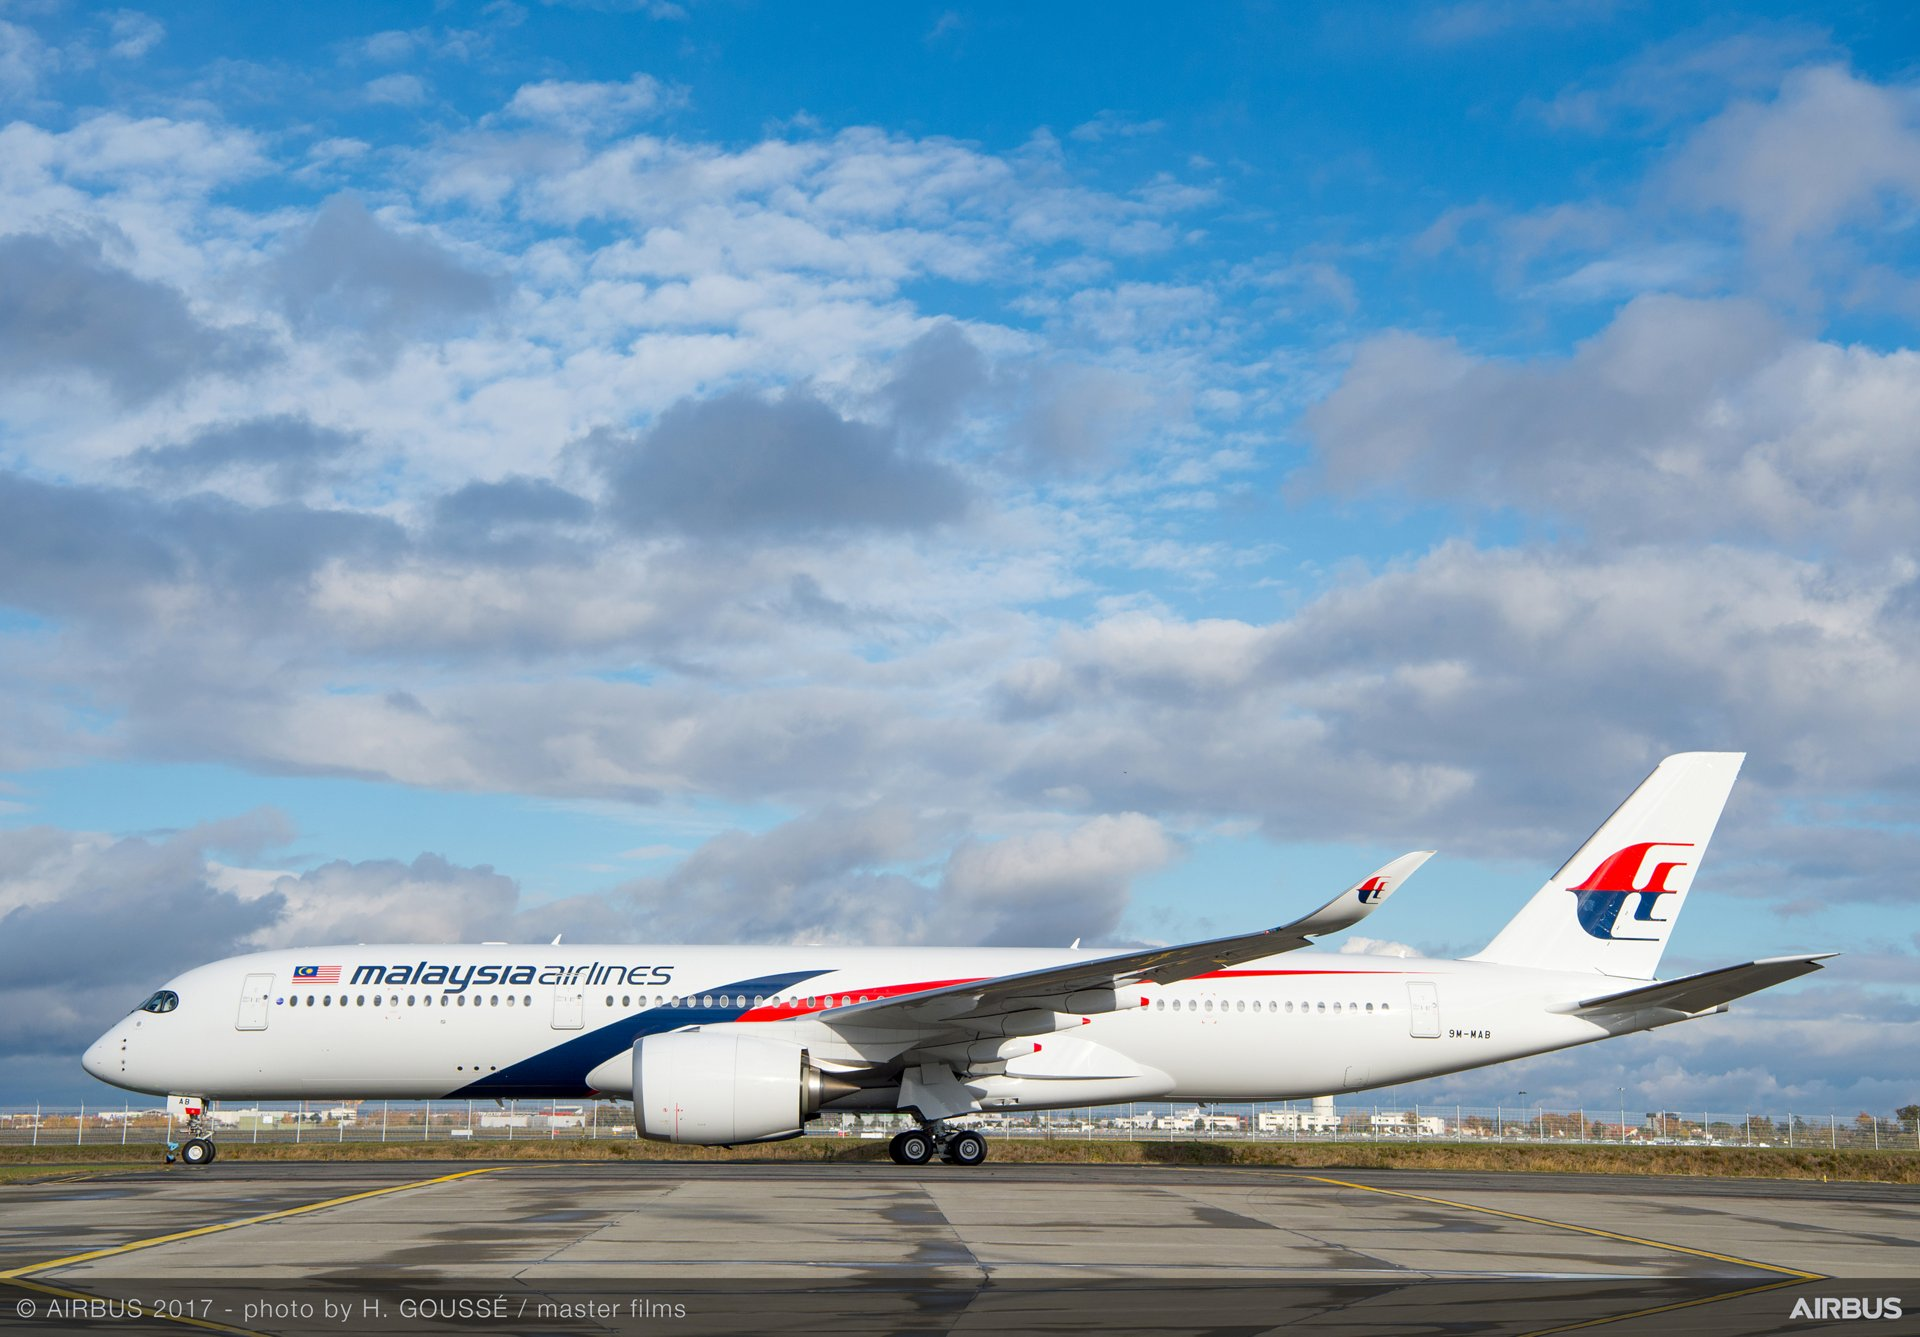 Malaysia Airlines received its first of six A350-900 widebody jetliners, all to be operated on lease from Air Lease Corporation